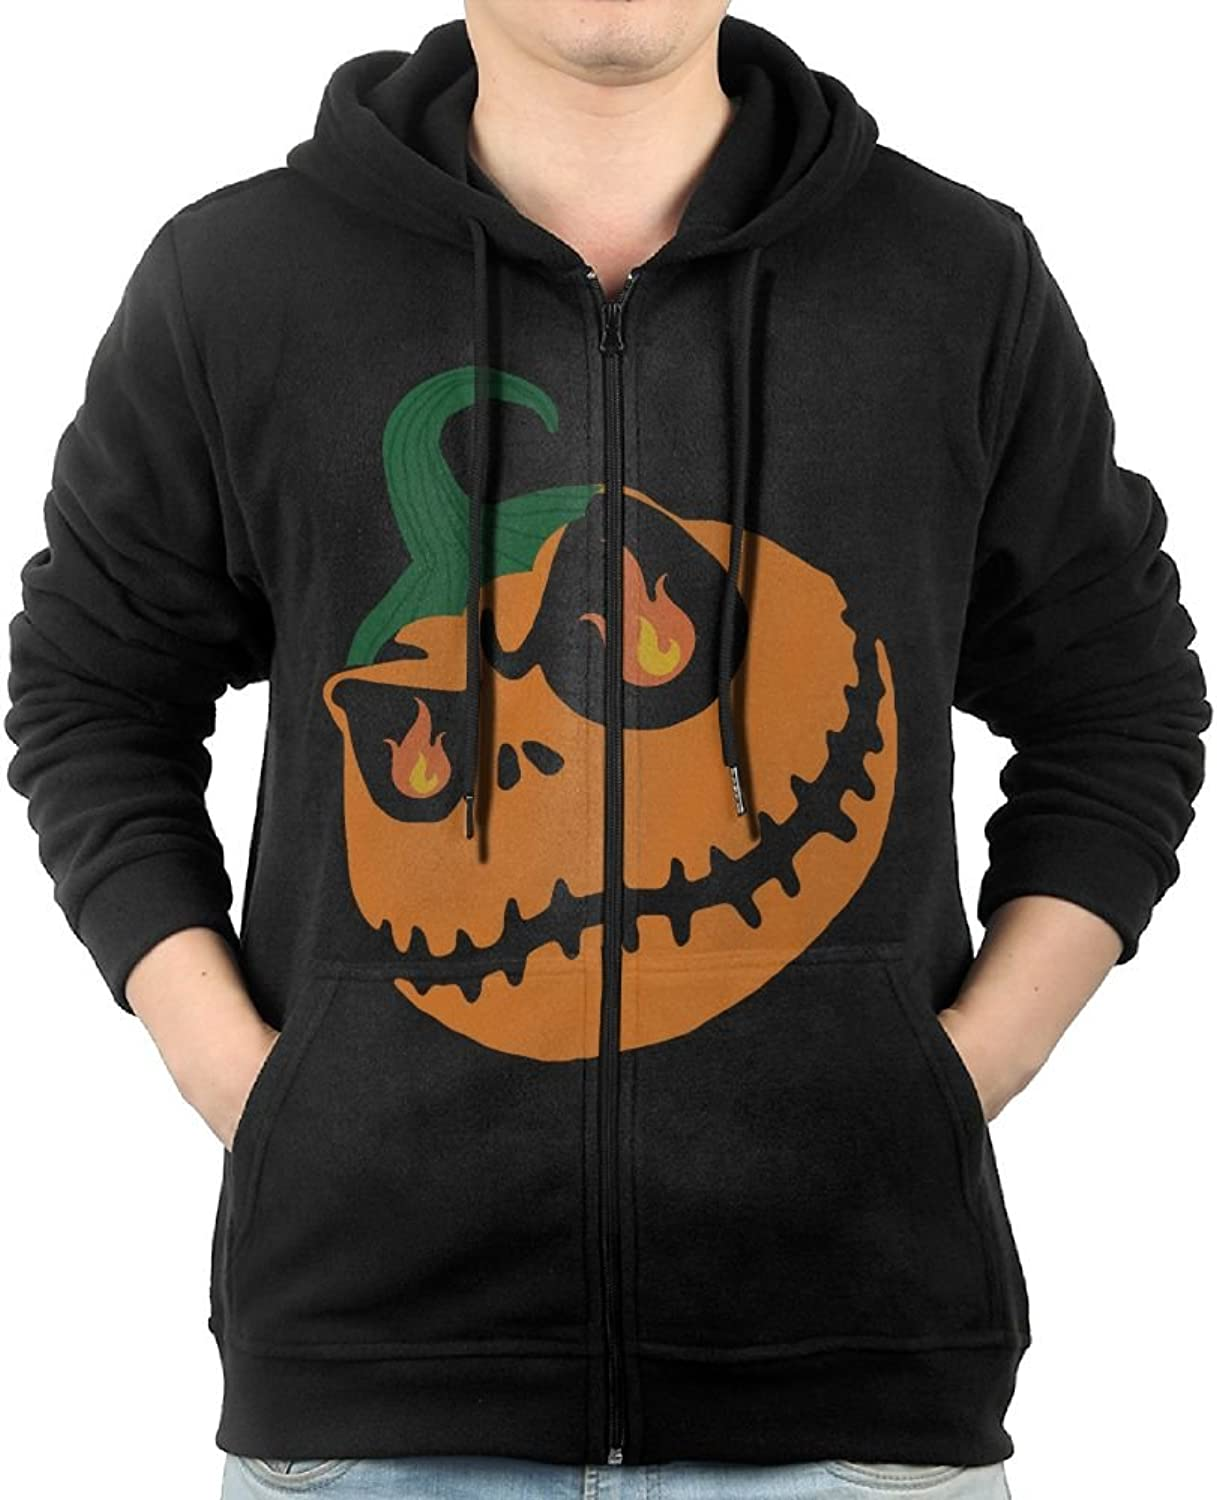 Halloween Pumpkin Sweater Shirt Zipper Jacket Breathable Hoody For Mens Fit Yoga Black